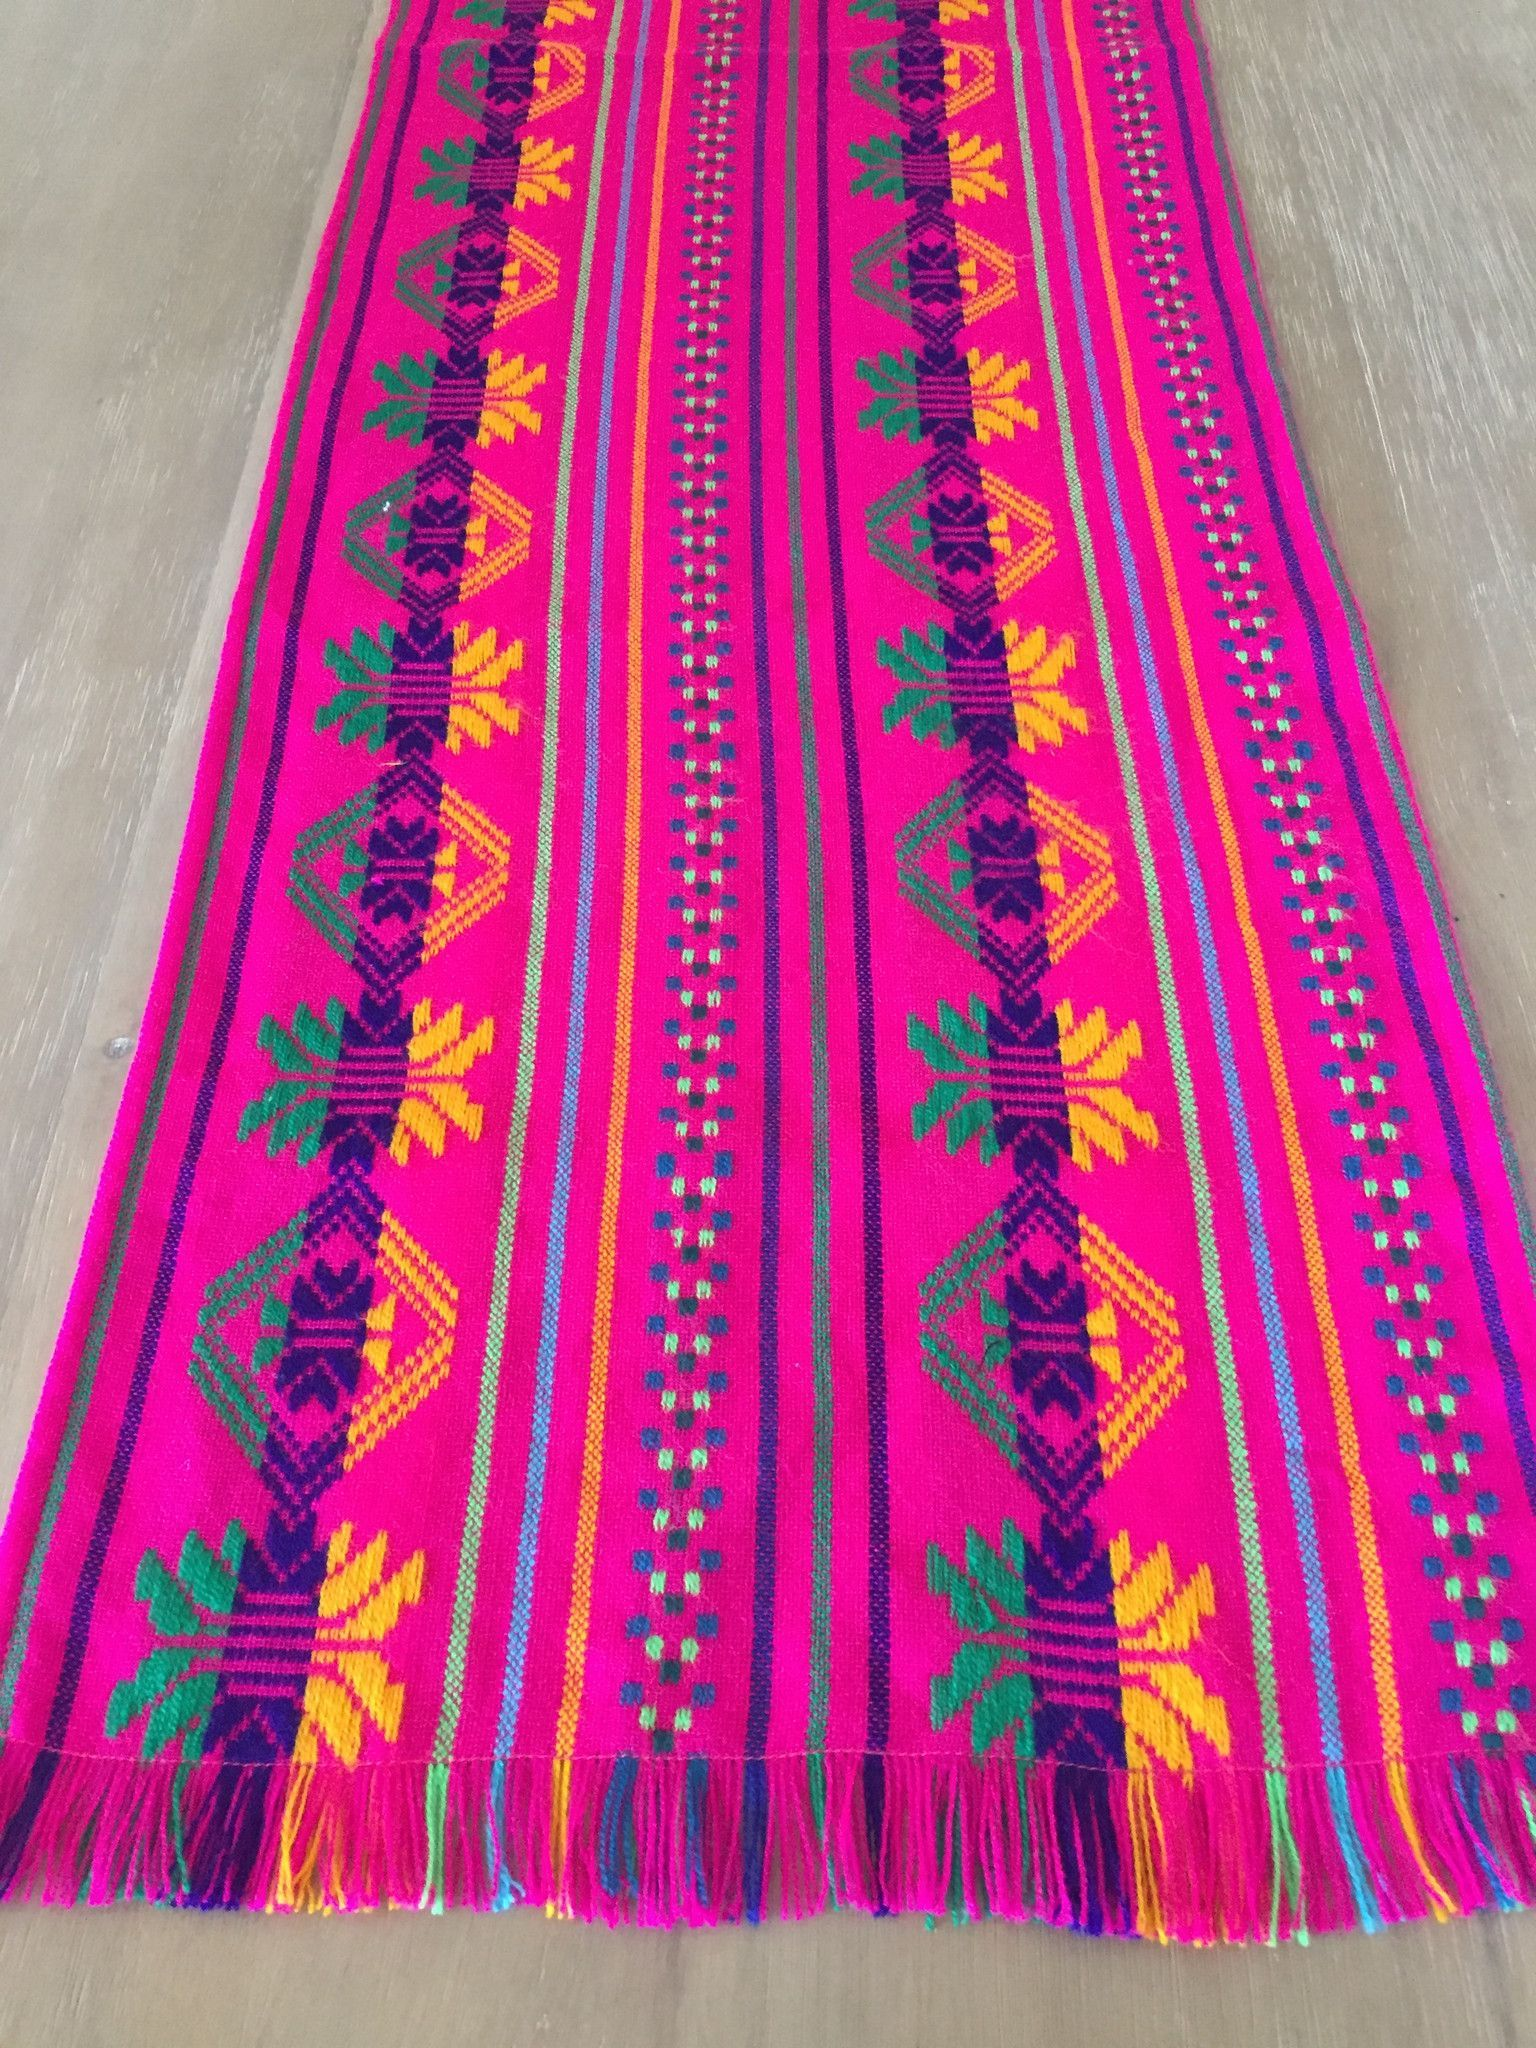 Beautiful Folkloric Mexican Colorful Embroidered Pink Table Runner! Great  For Your Next Mexican Themed Party